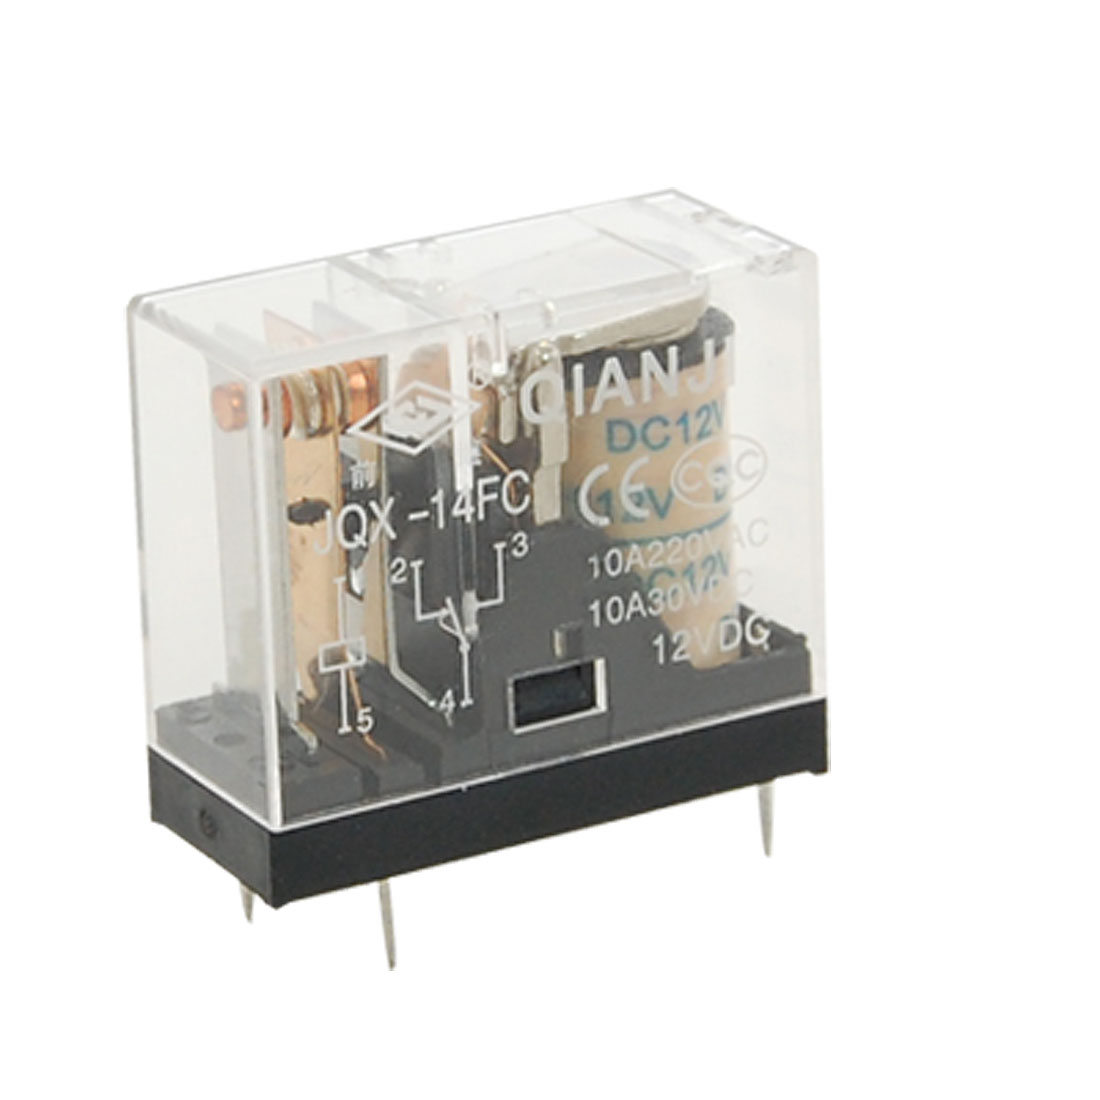 DC 12V Coil 10A General Purpose Power Relay 5 Pin SPDT G2R-1 JQX-14FC 1Z